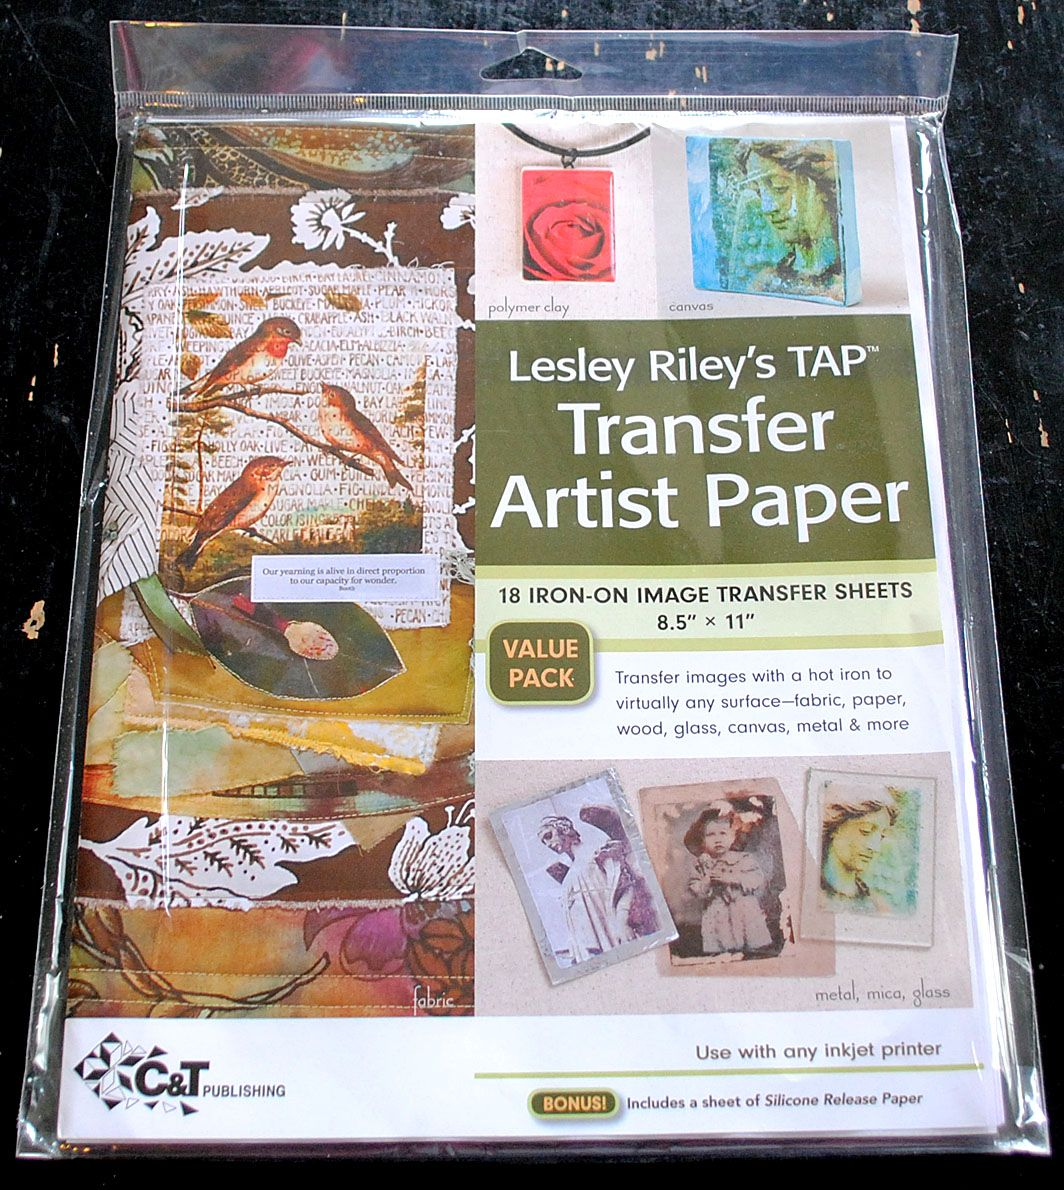 DIY Iron On transfer paper recommended as THE transfer paper to use...via The Graphics Fairy